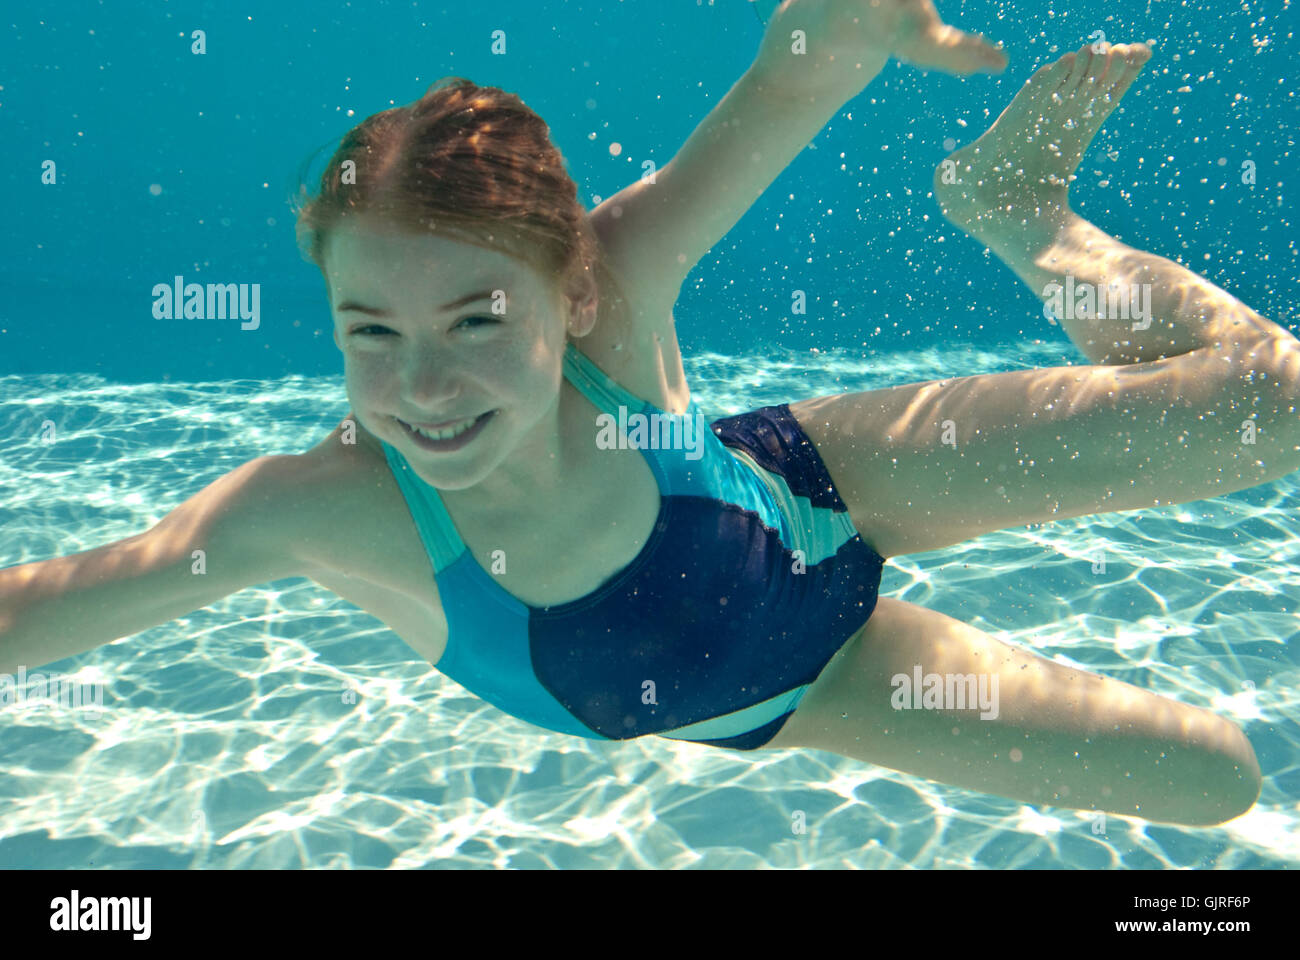 girl emerges and smiles - Stock Image